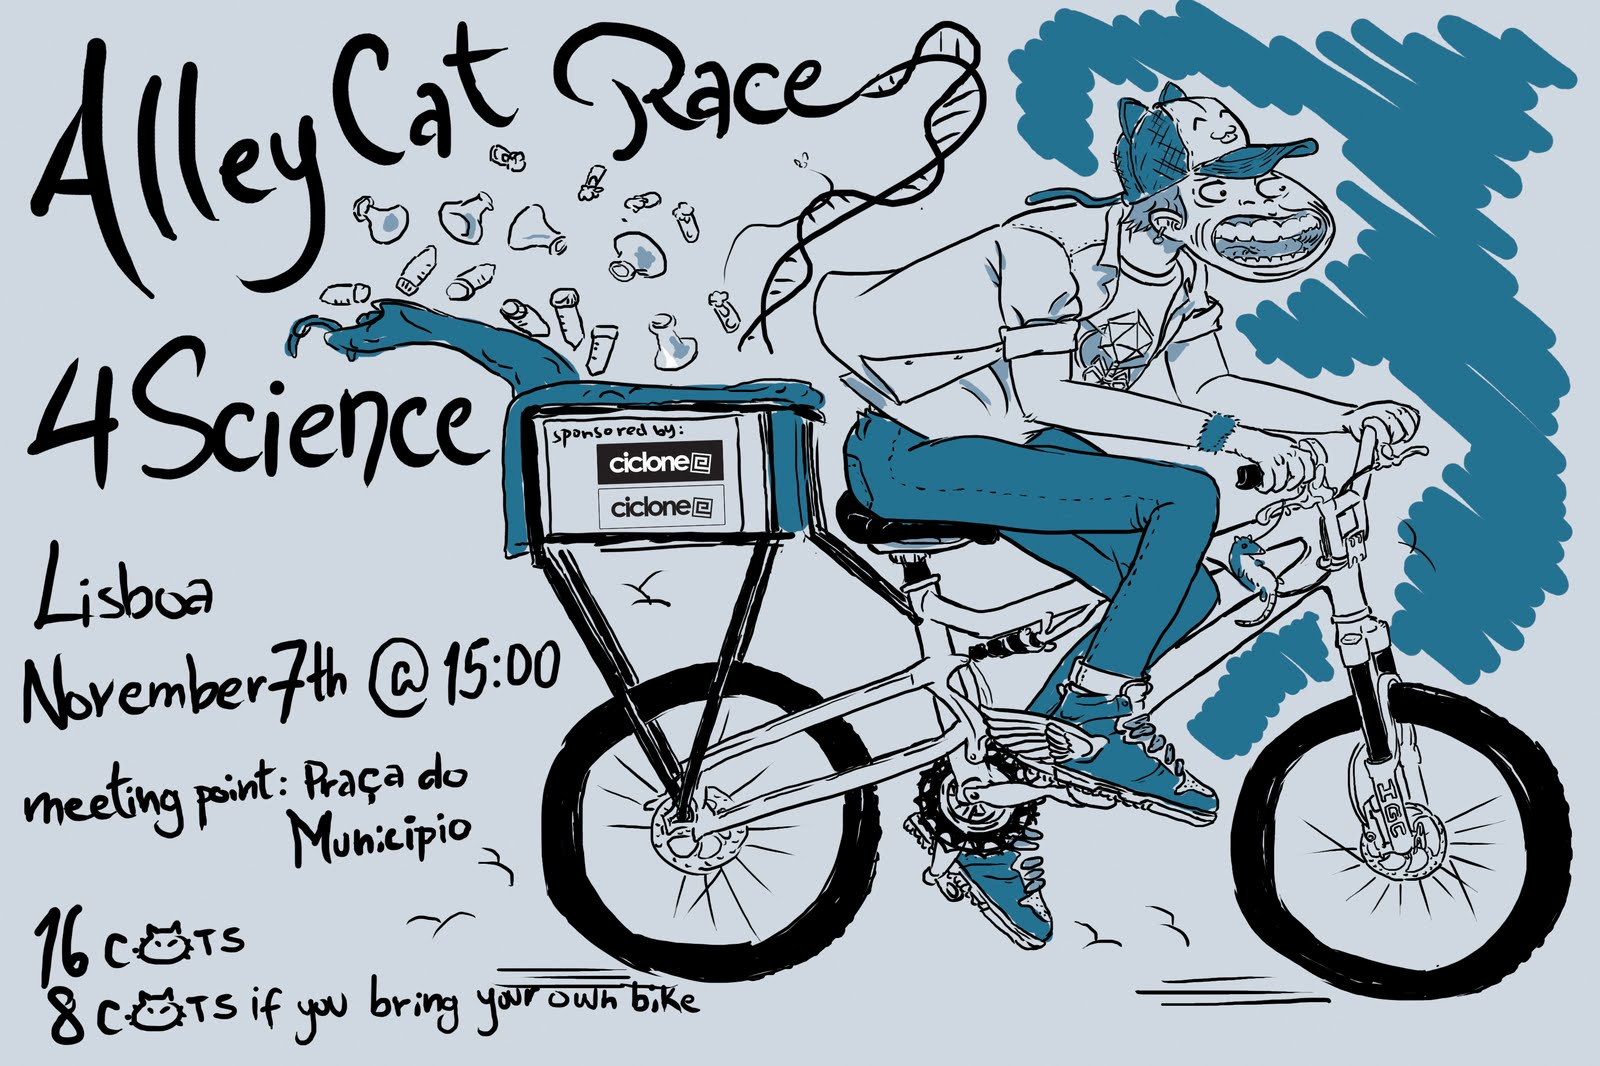 Alleycat Race 4 Science